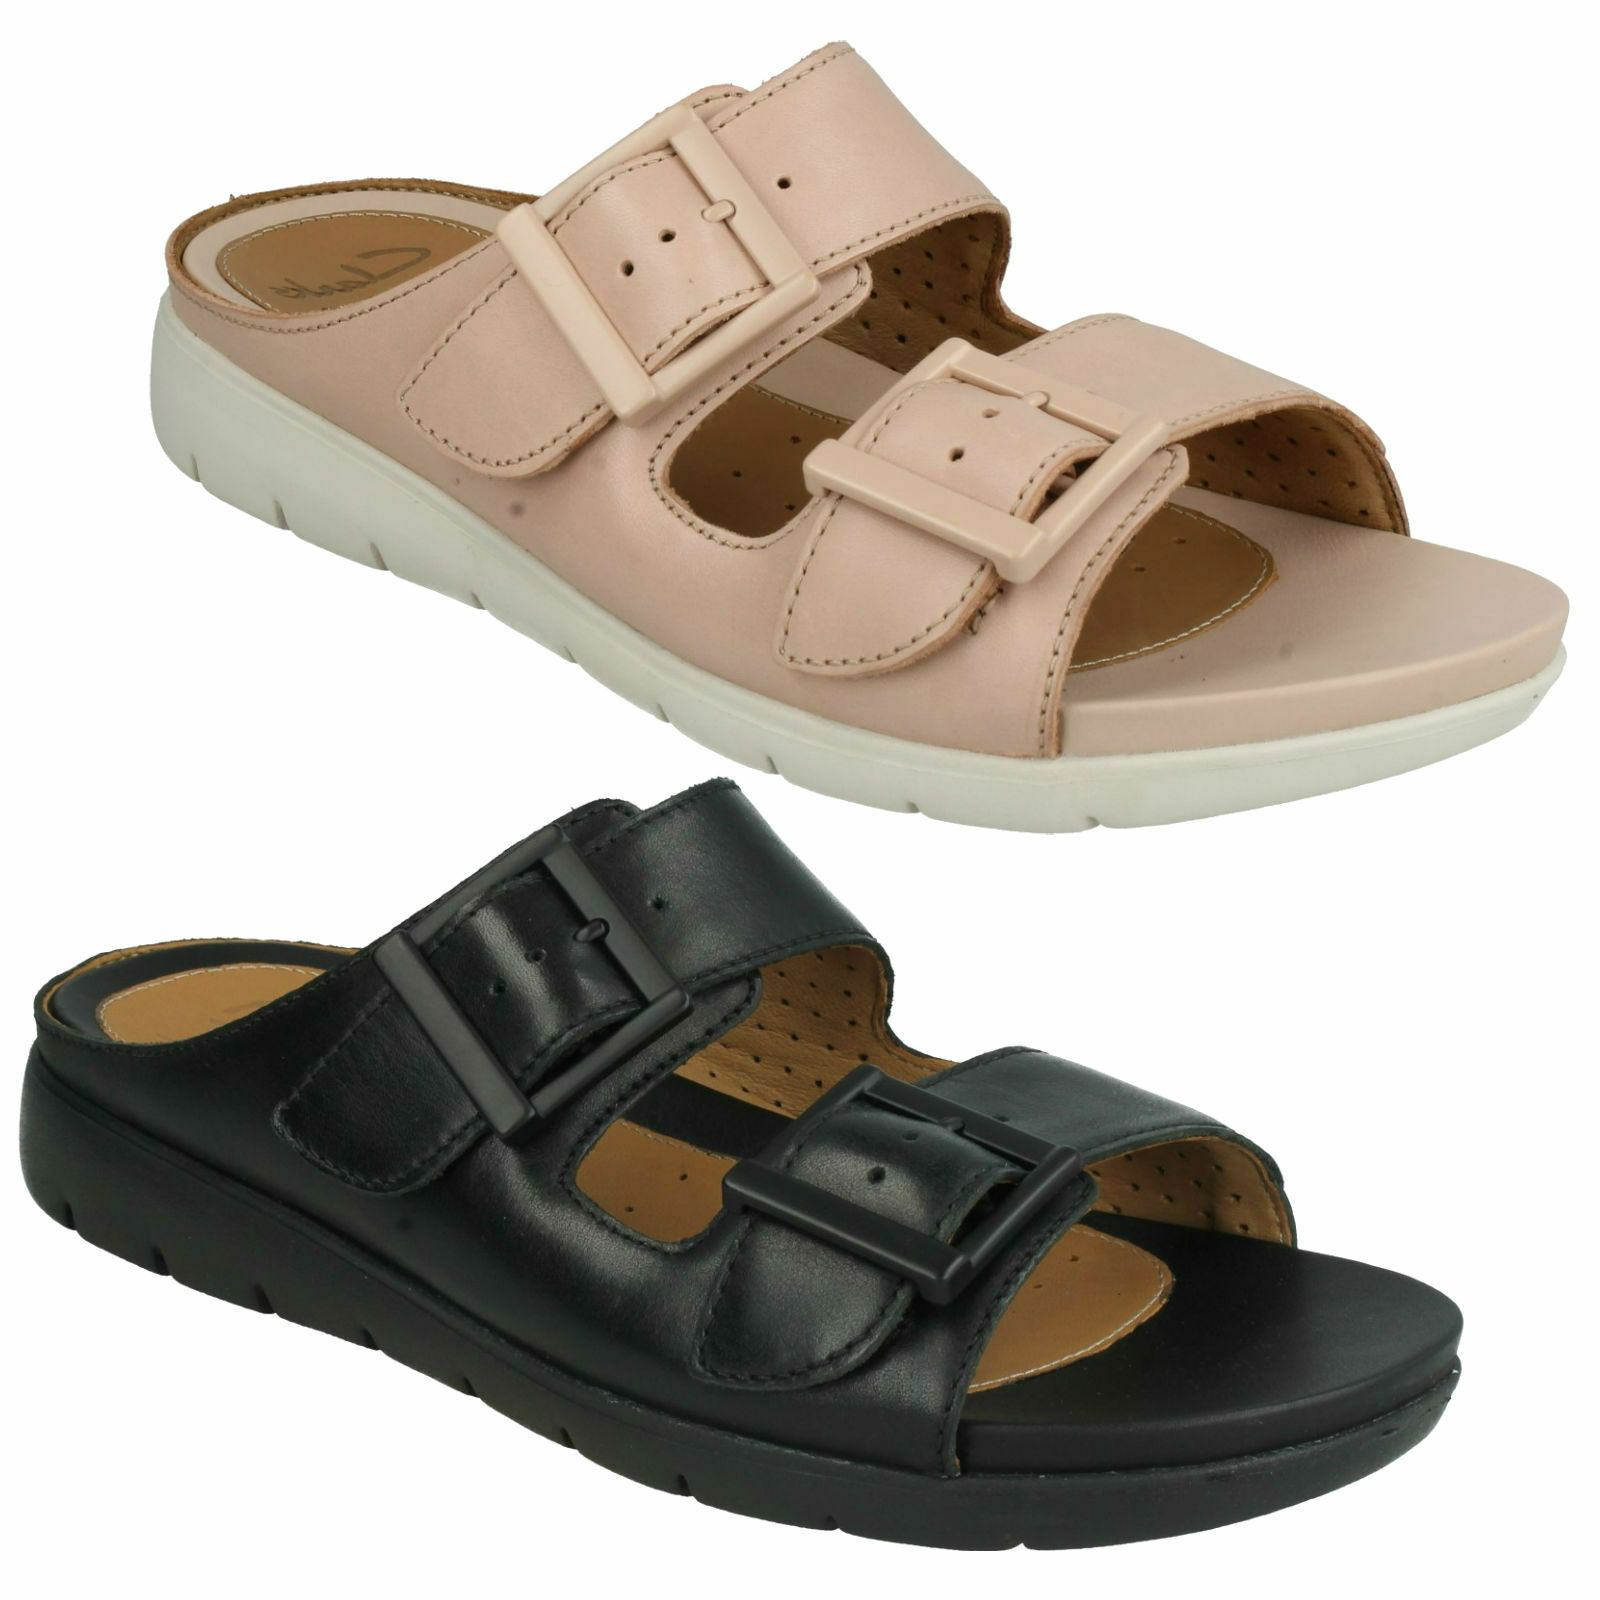 Último gran descuento UN HARLA LADIES CLARKS UNSTRUCTURED BUCKLE BEACH MULES LEATHER SUMMER SANDALS